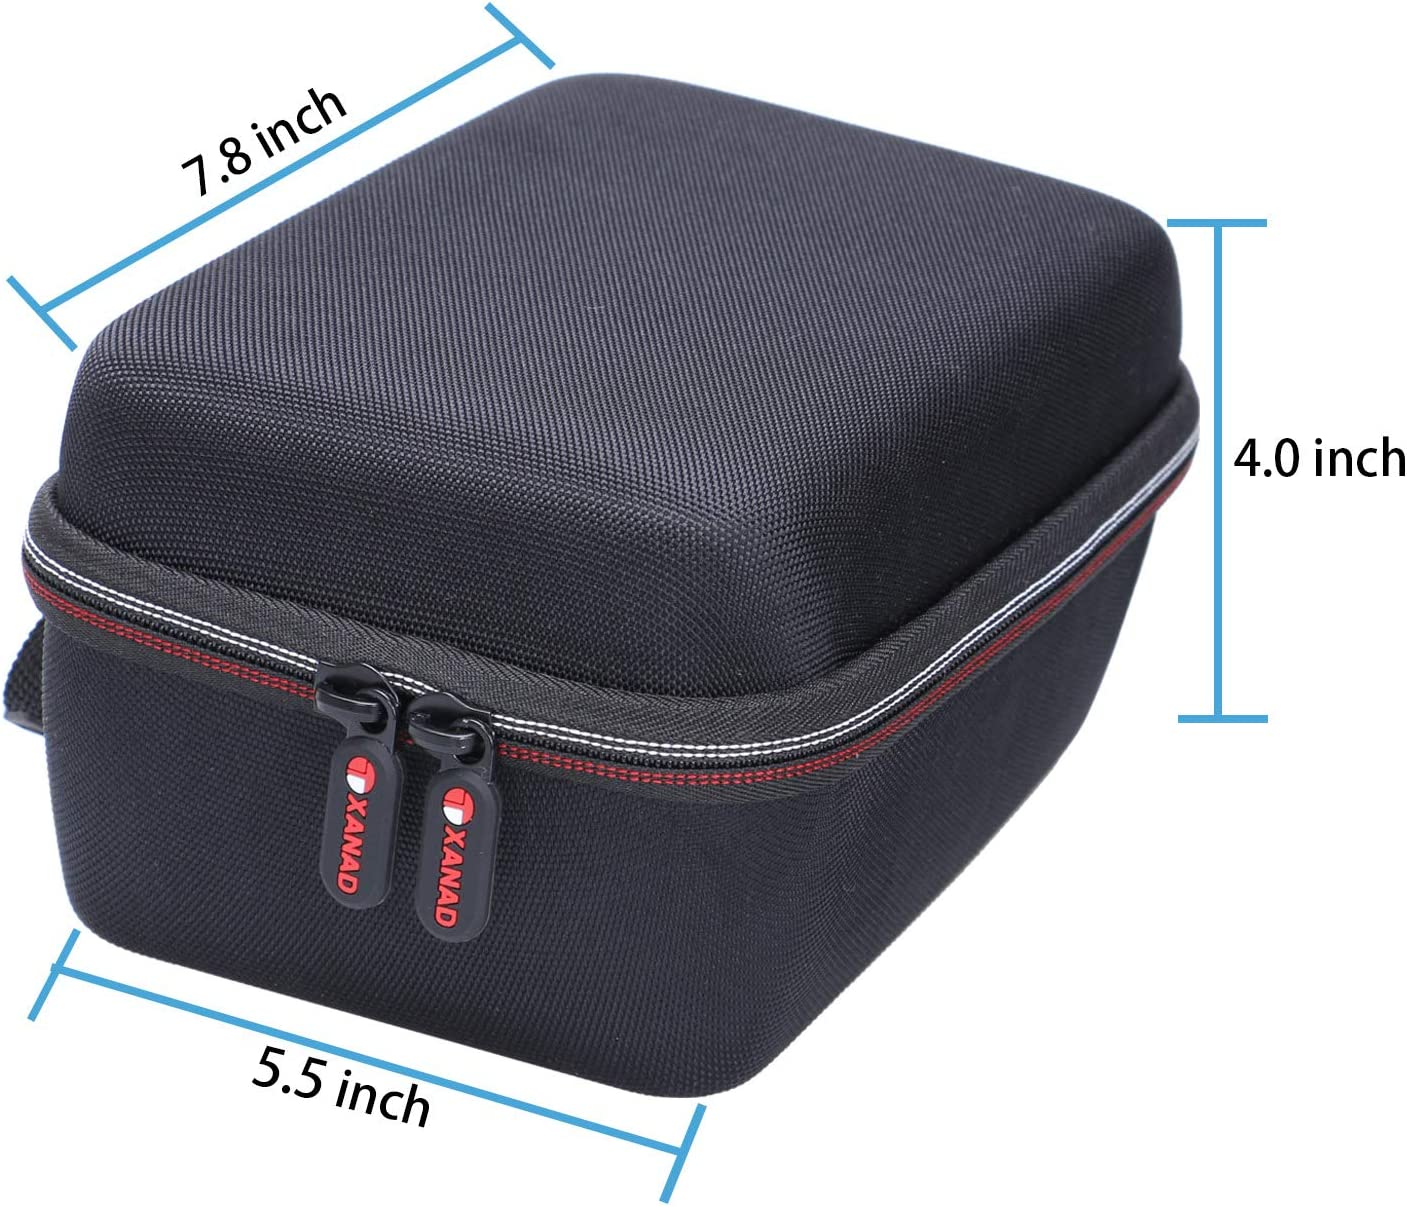 XANAD Hard Case for Gosky Titan 12X50 High Power Prism Monocular Travel Carrying Storage Protective Bag